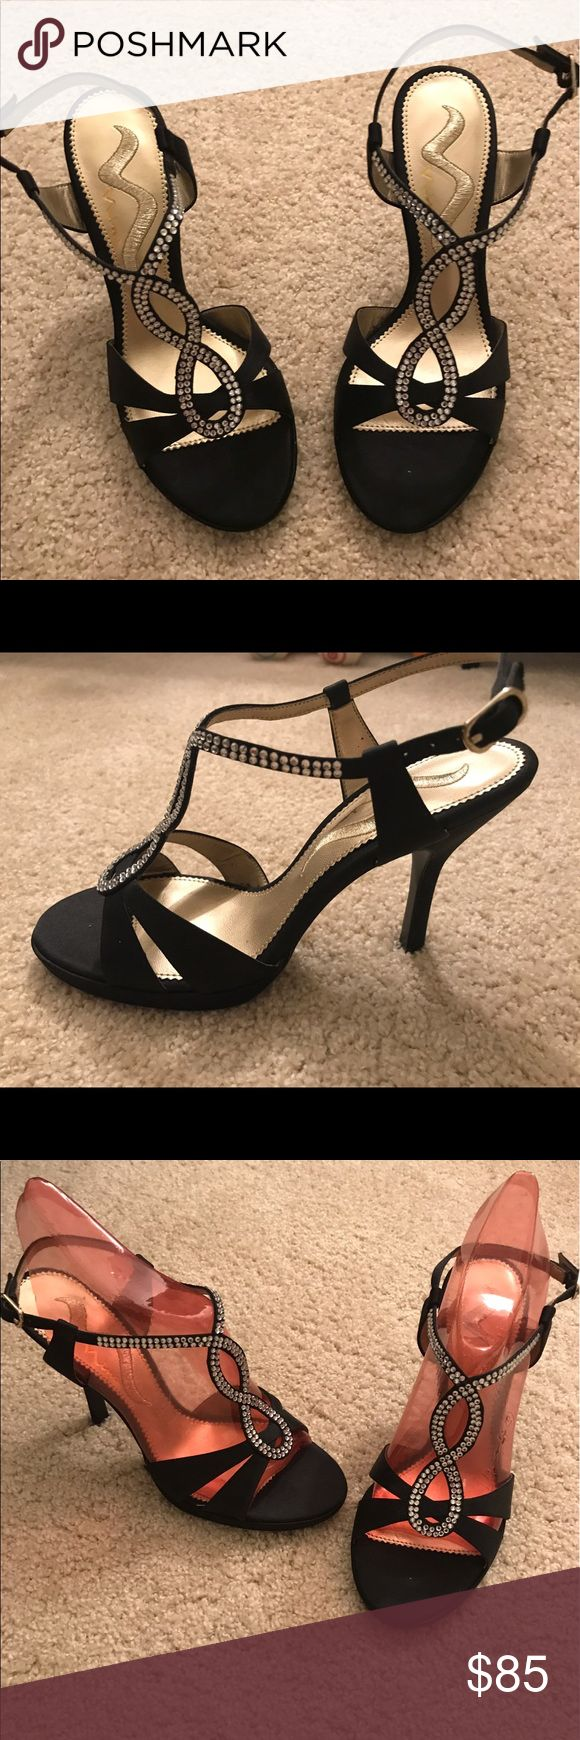 Nina Black and Sparkle Shoes Nina Black and Sparkle Heels. Never worn. Beautiful strappy heels for a night out!***ITEM SOLD AS IS*** Nina Shoes Heels